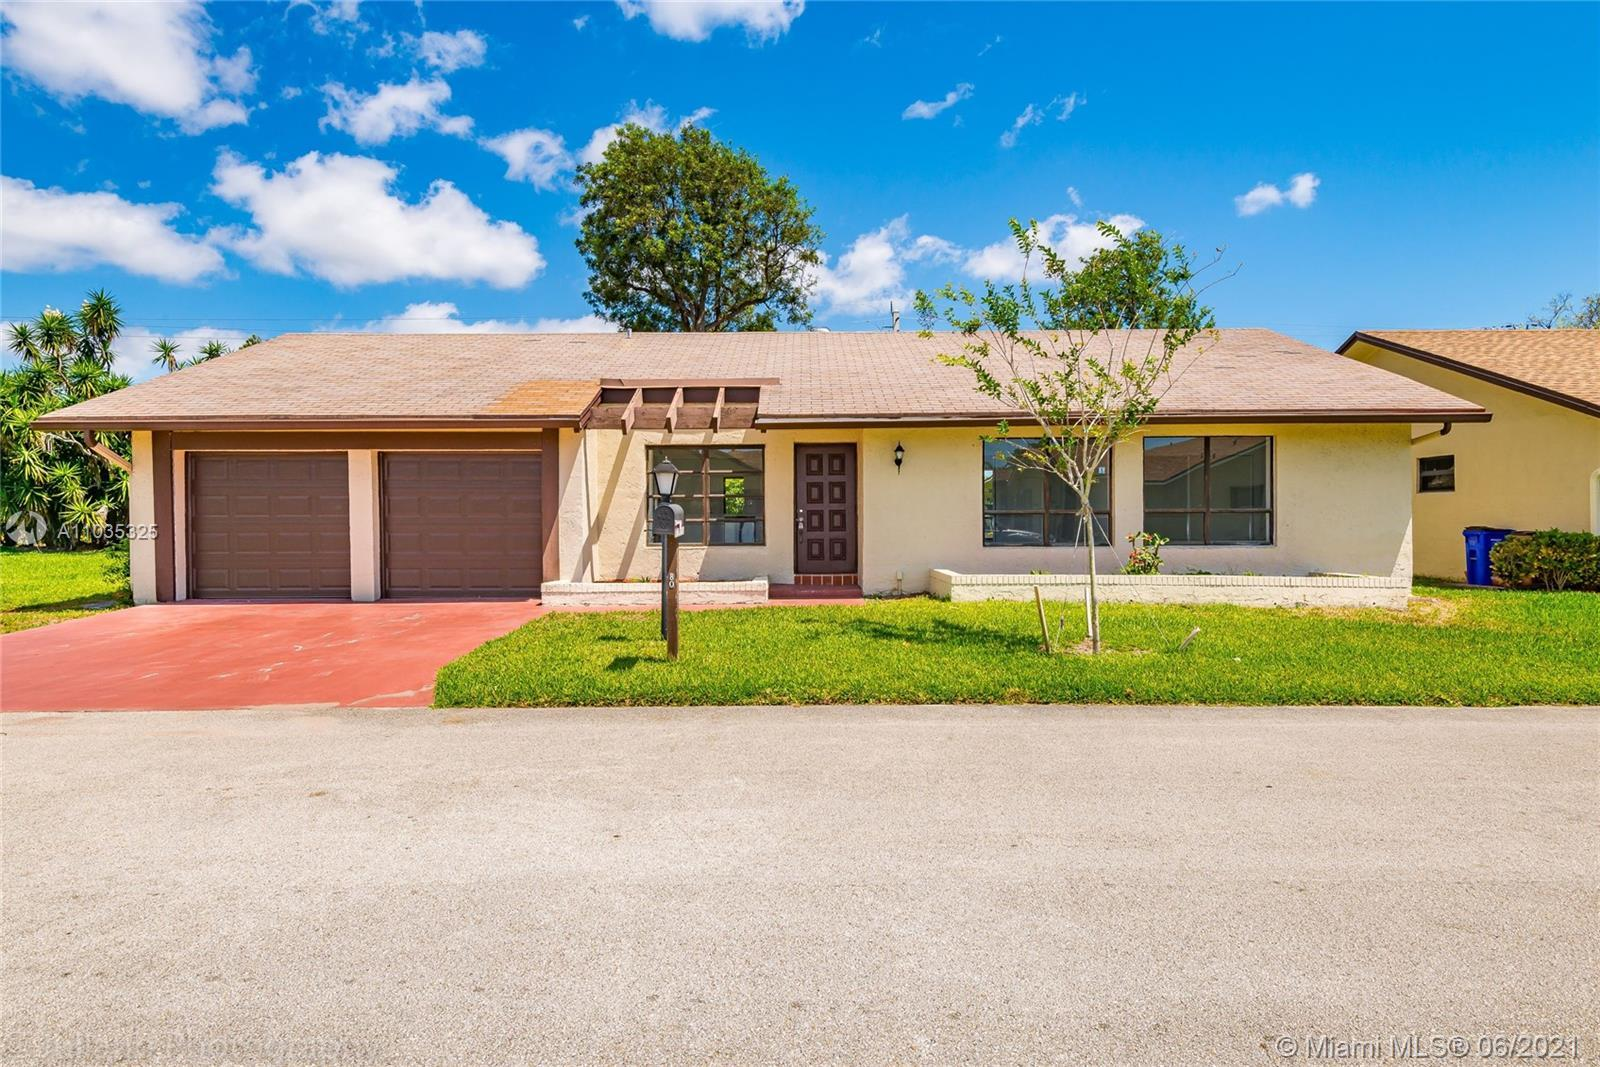 NEW ROOF is being installed! Rare opportunity to own this Turn Key, move-in ready 3 bed/2 bath, 2 ca